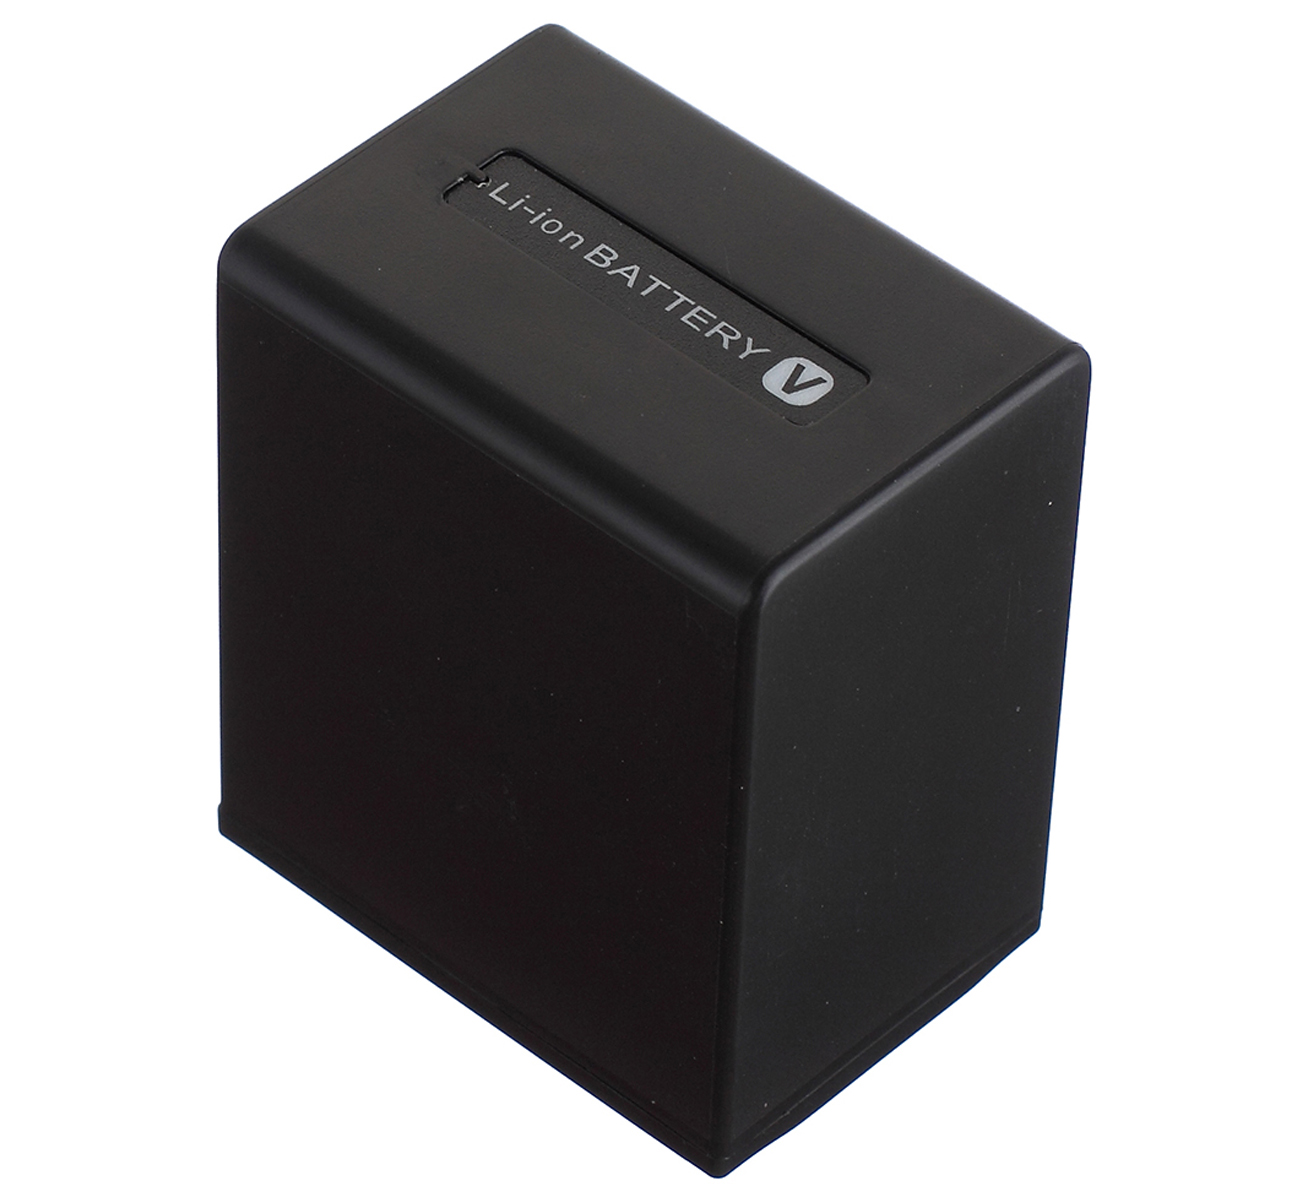 DR-CX455 HDR-CX485 Handycam Camcorder Battery Pack for Sony HDR-CX450 HDR-CX480